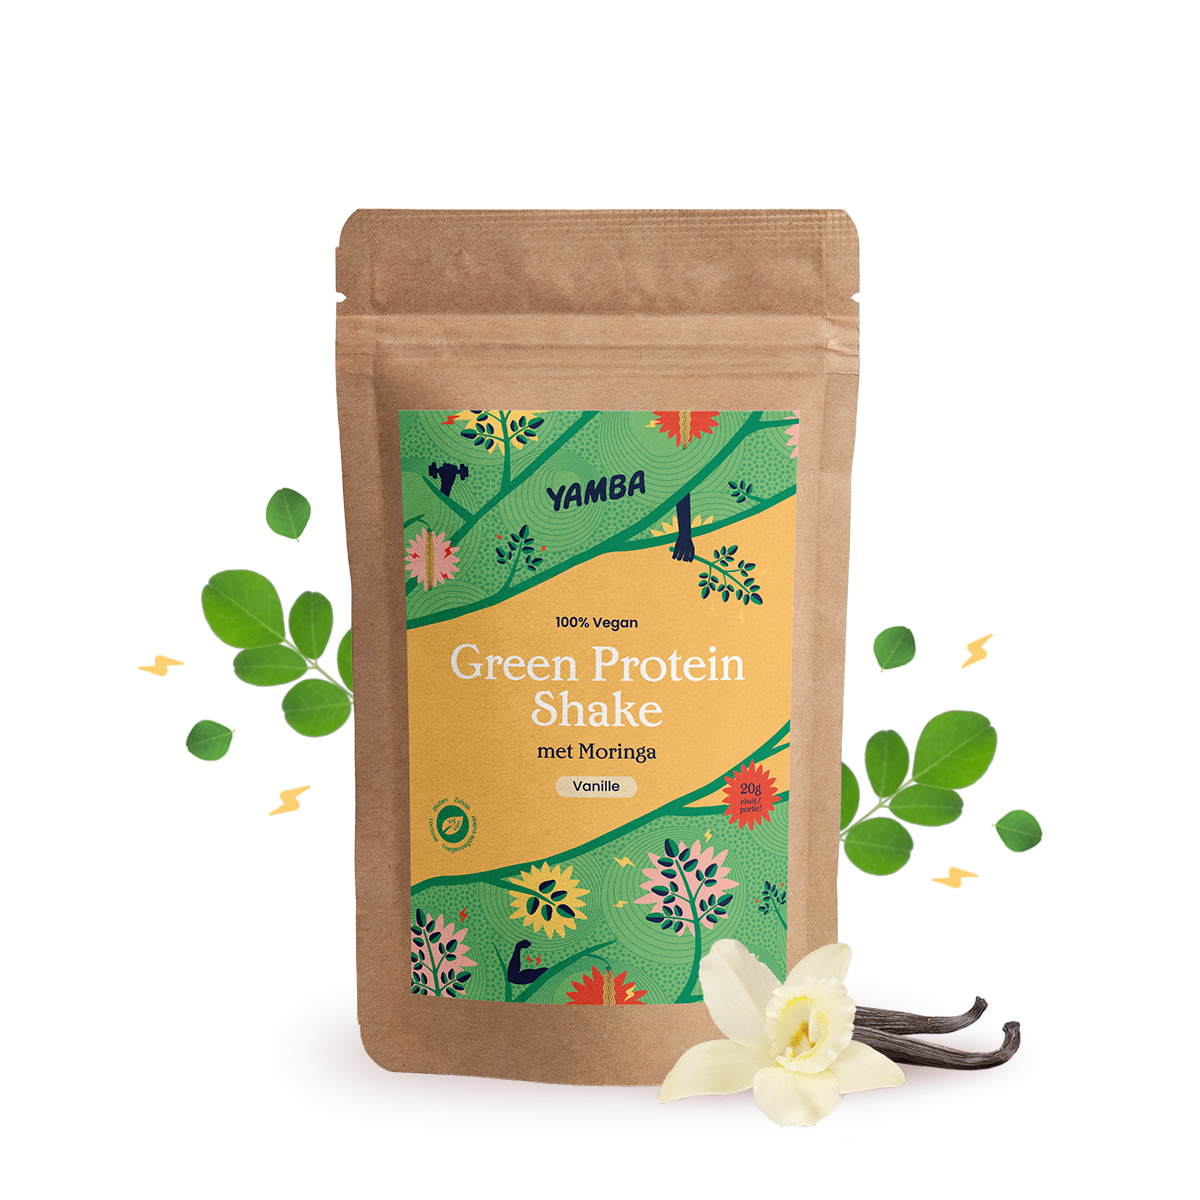 Green Protein Shake Vanilla (1kg) packaging